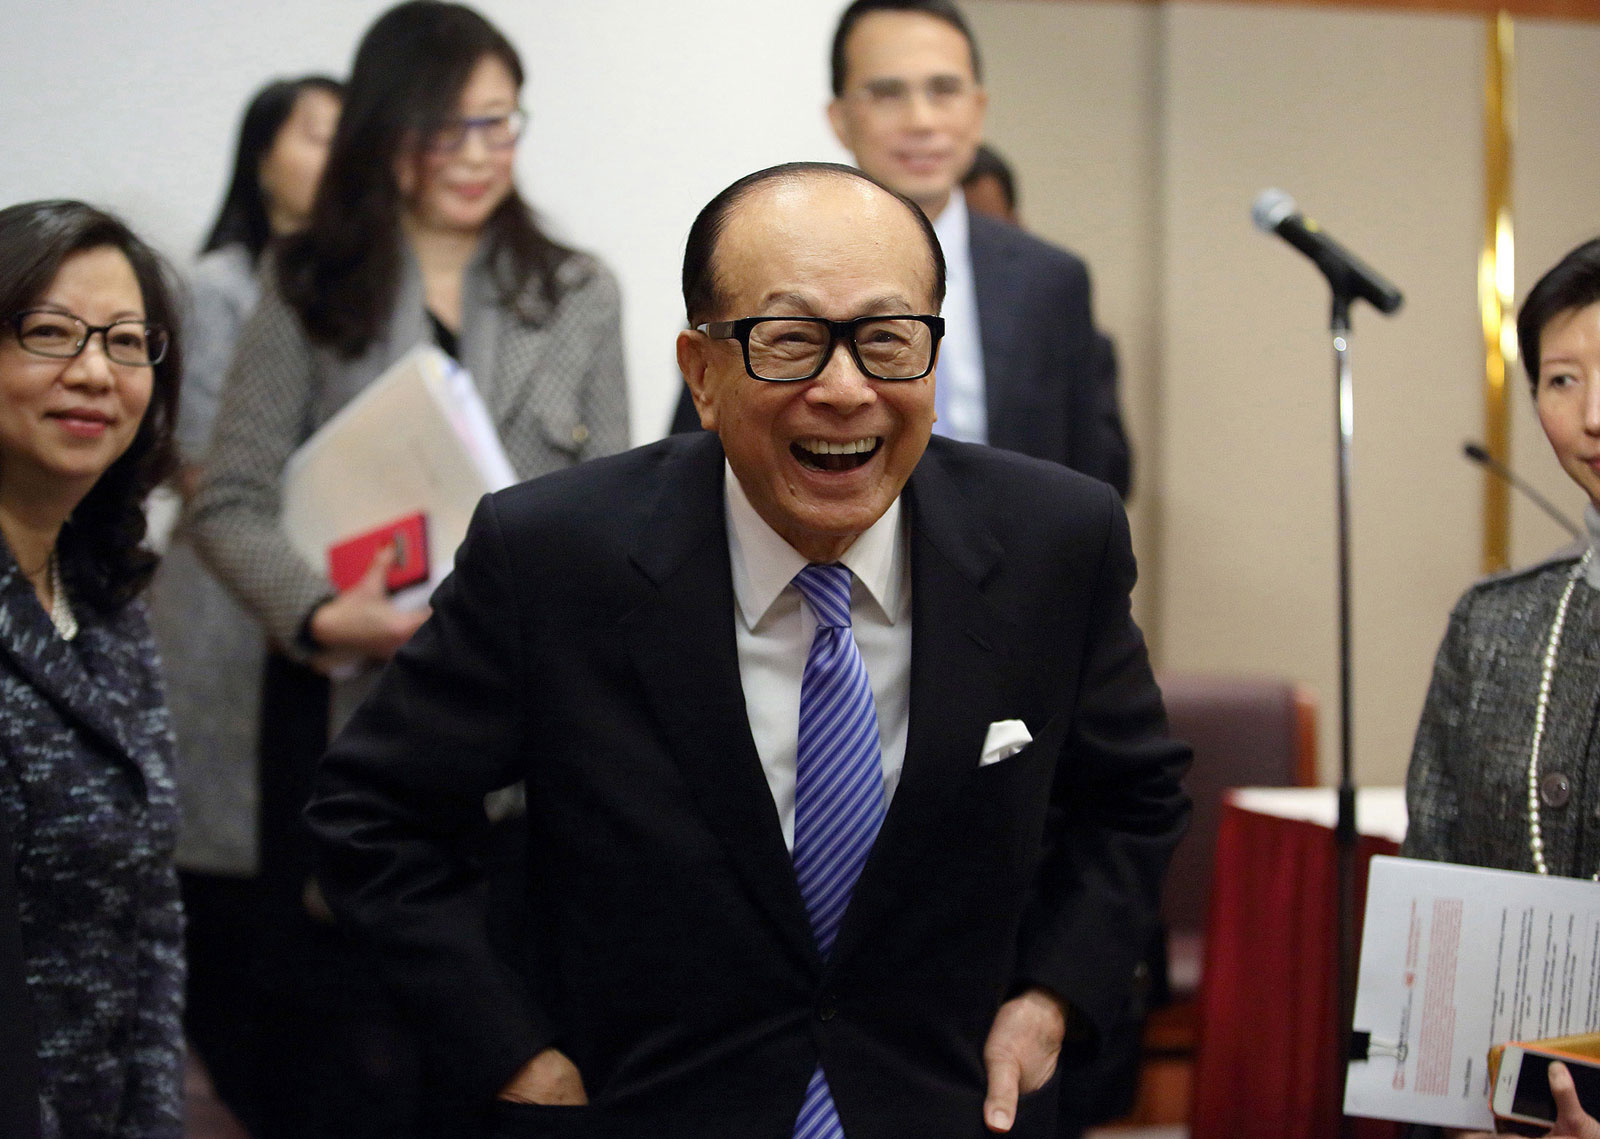 Billionaire Li Ka-shing, chairman of Cheung Kong Holdings and Hutchison Whampoa, reacts while speaking to the media as he leaves a news conference in Hong Kong